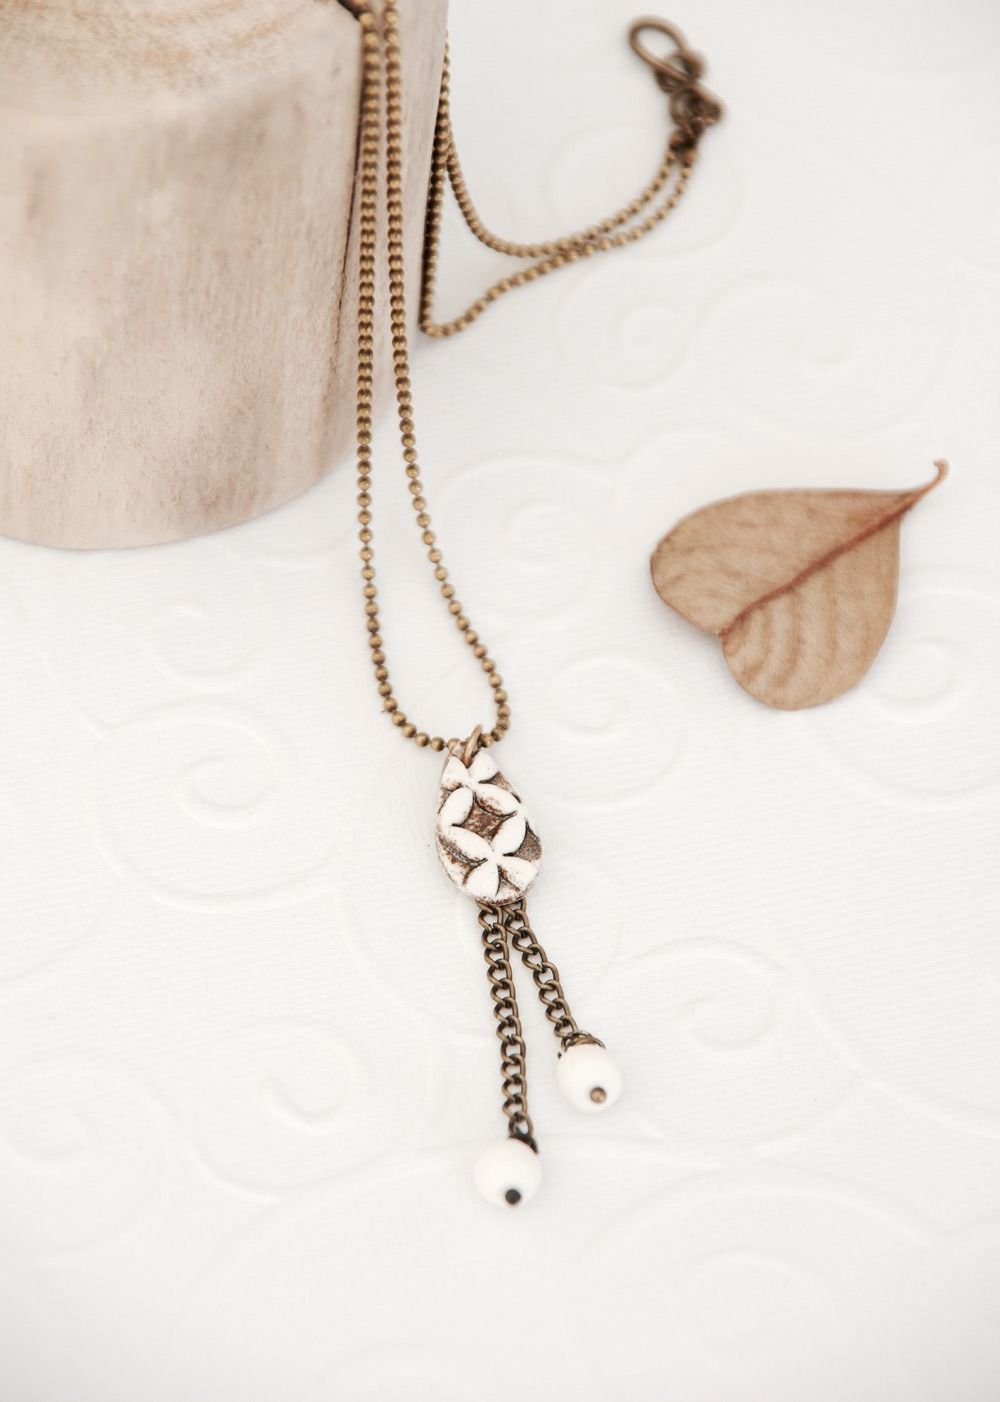 Collier Pulcinella - Collection Venezia : Collier par daiceramic